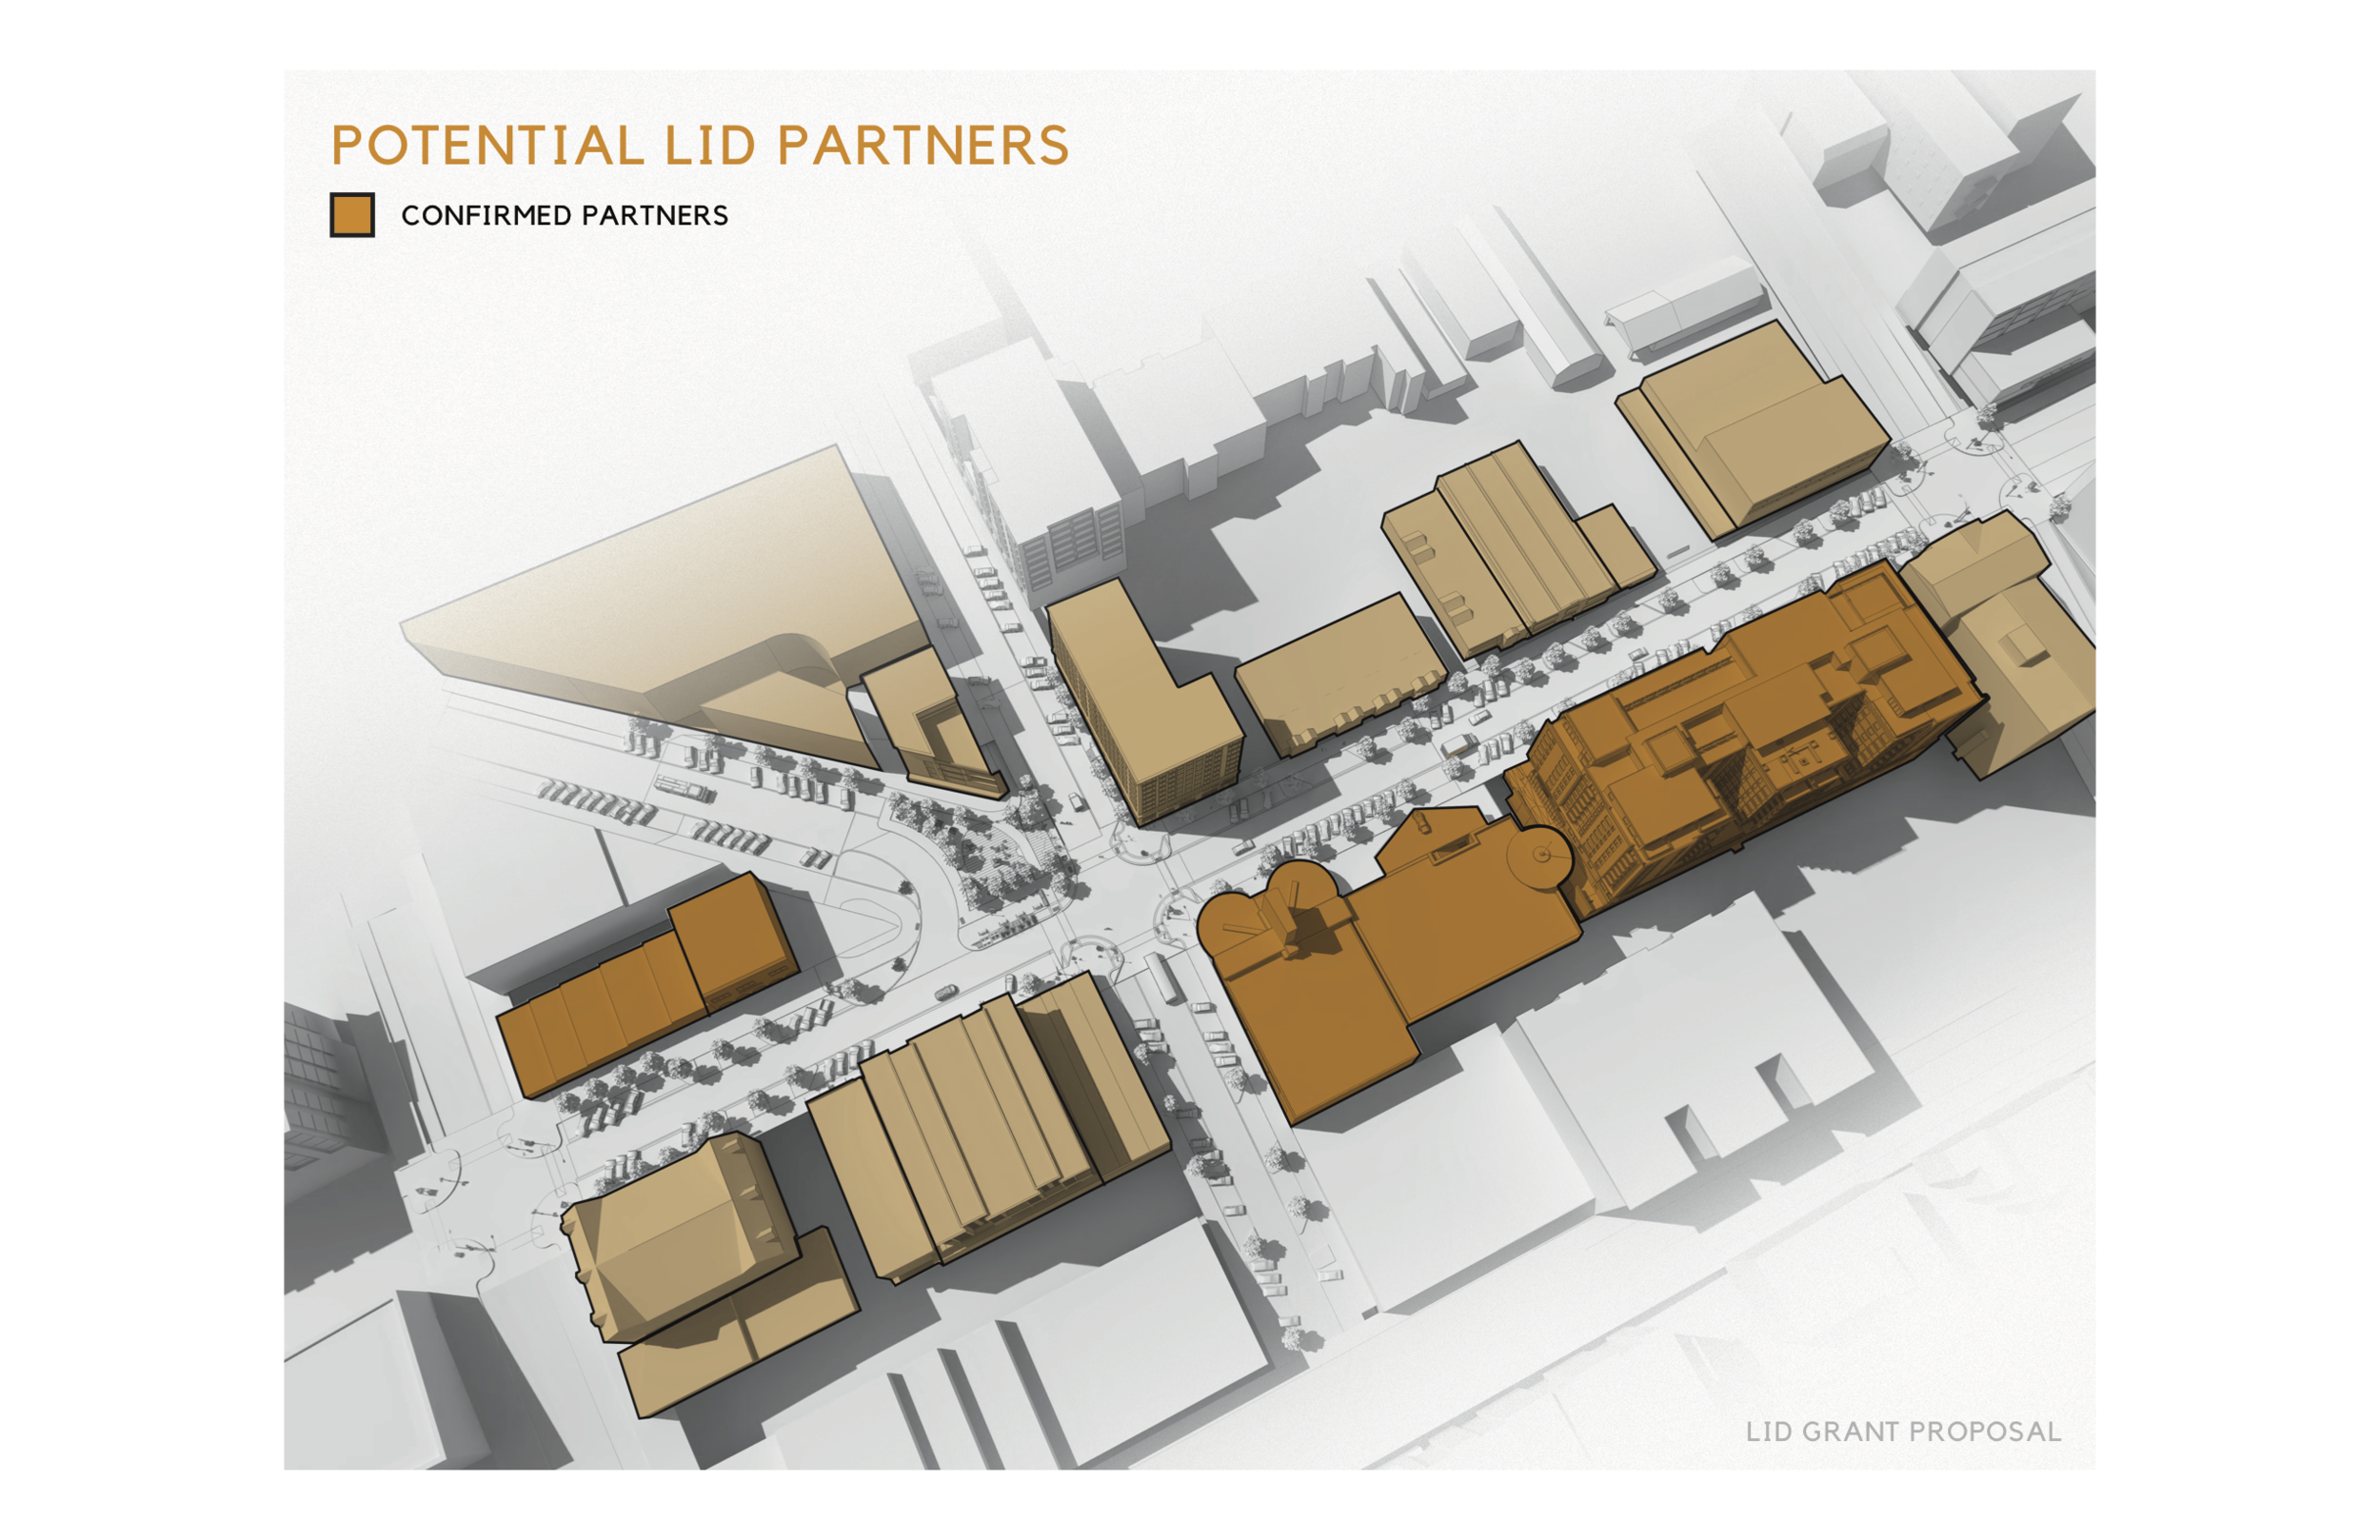 Work done for Ferguson Architecture - Led the design team for LID visioning (rendering by others)